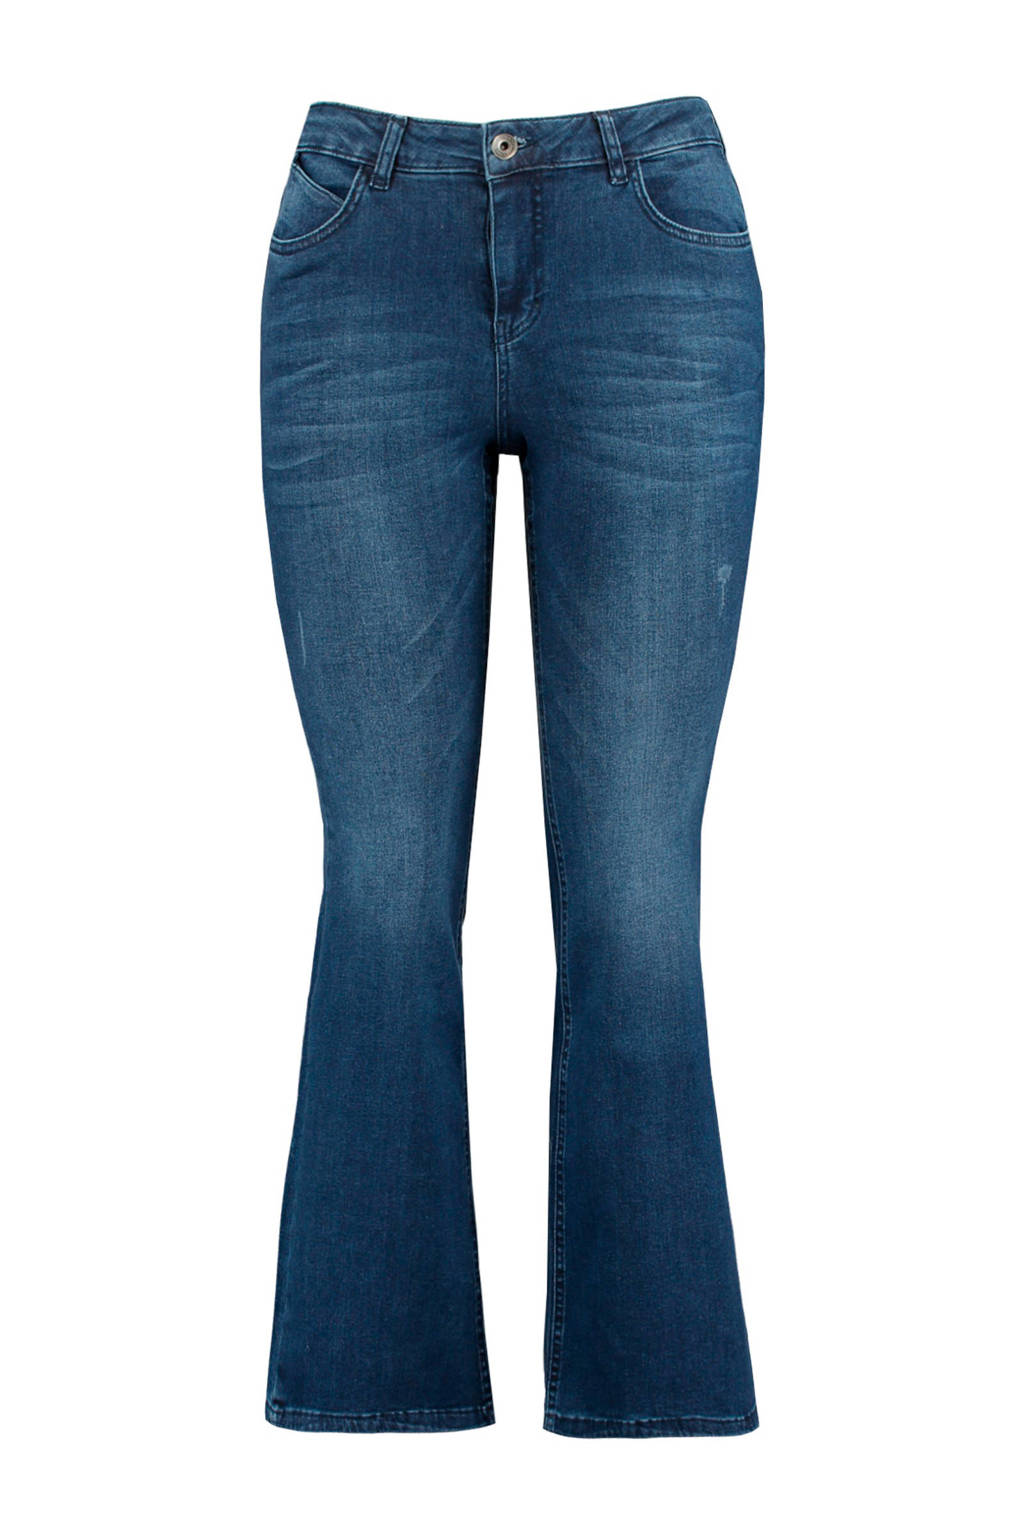 MS Mode flared jeans blauw, Blauw